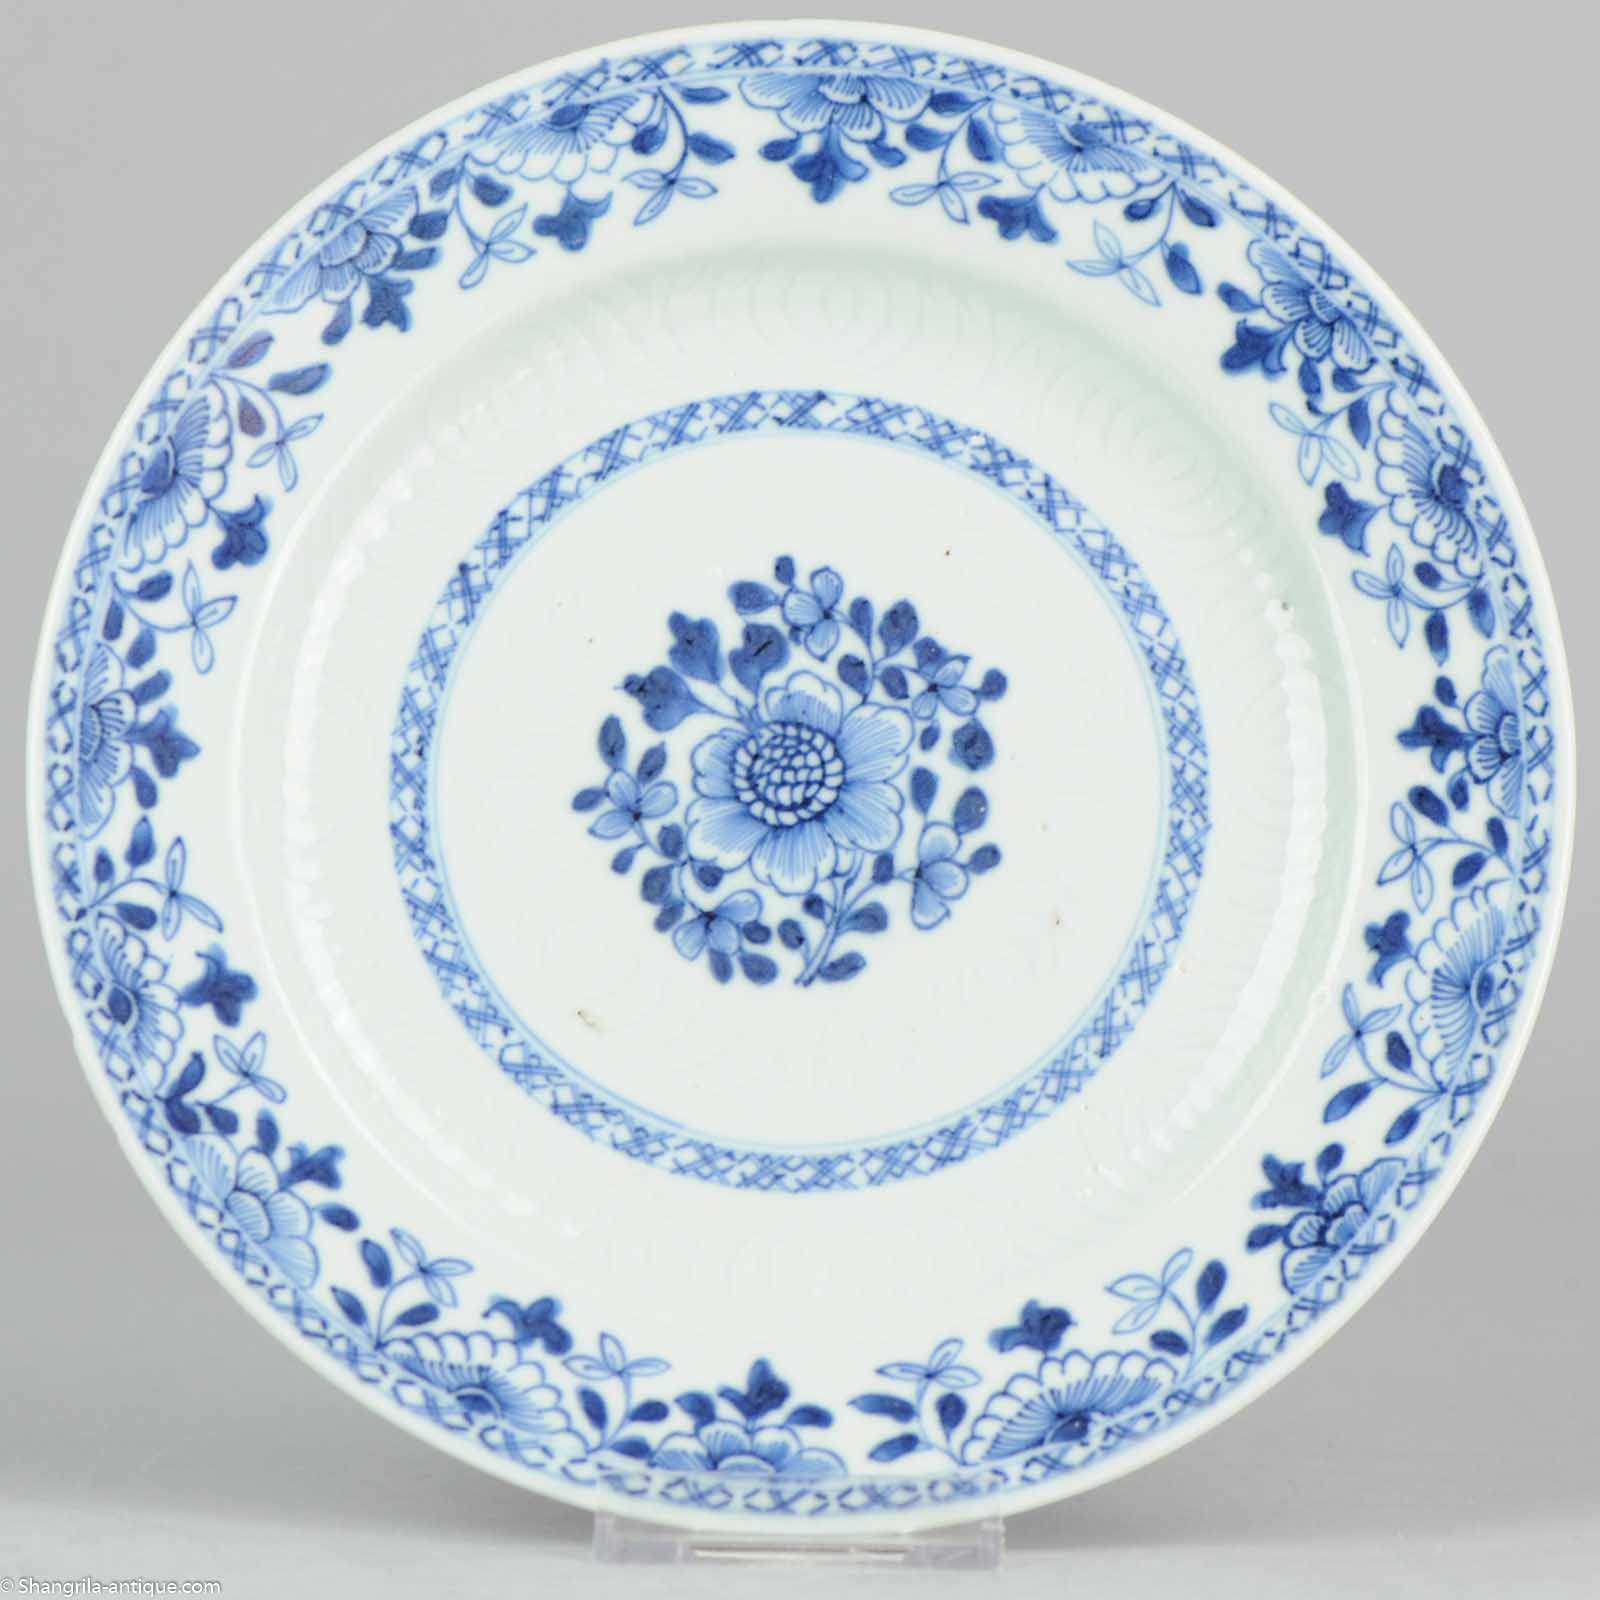 232cm 18c chinese porcelain blue and white plate carved flowers 232cm 18c chinese porcelain blue and white plate carved flowers floridaeventfo Images